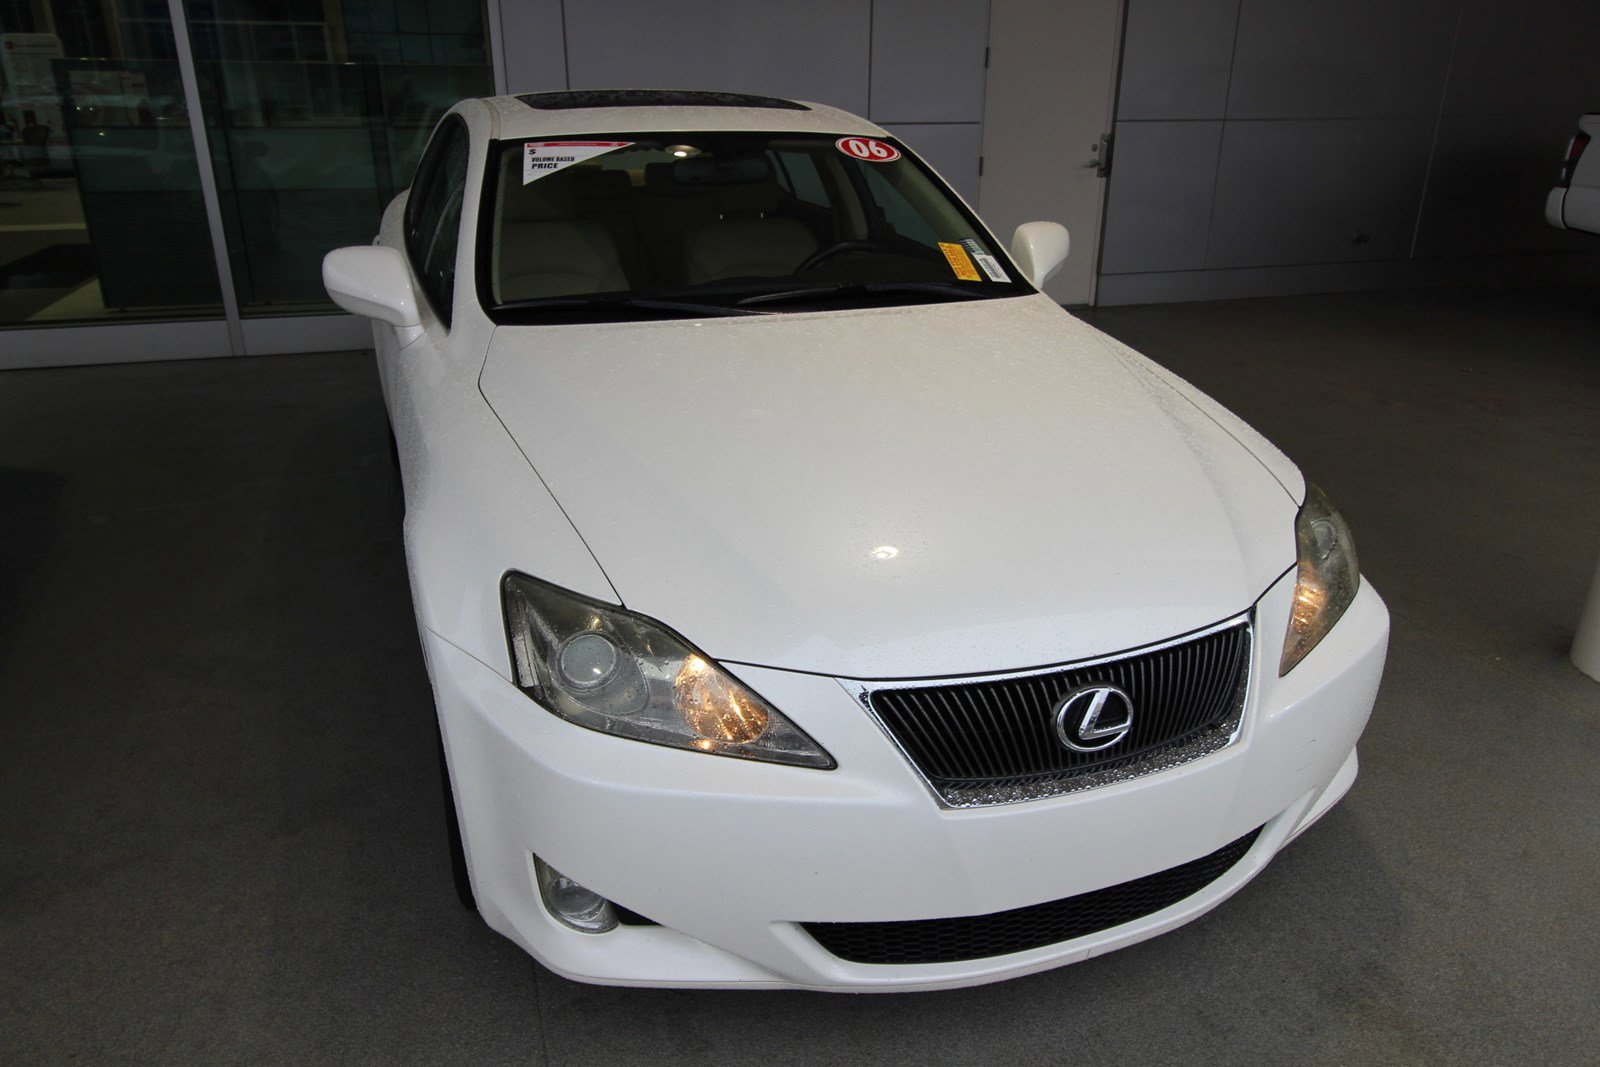 Pre-Owned 2006 Lexus IS 350 Auto